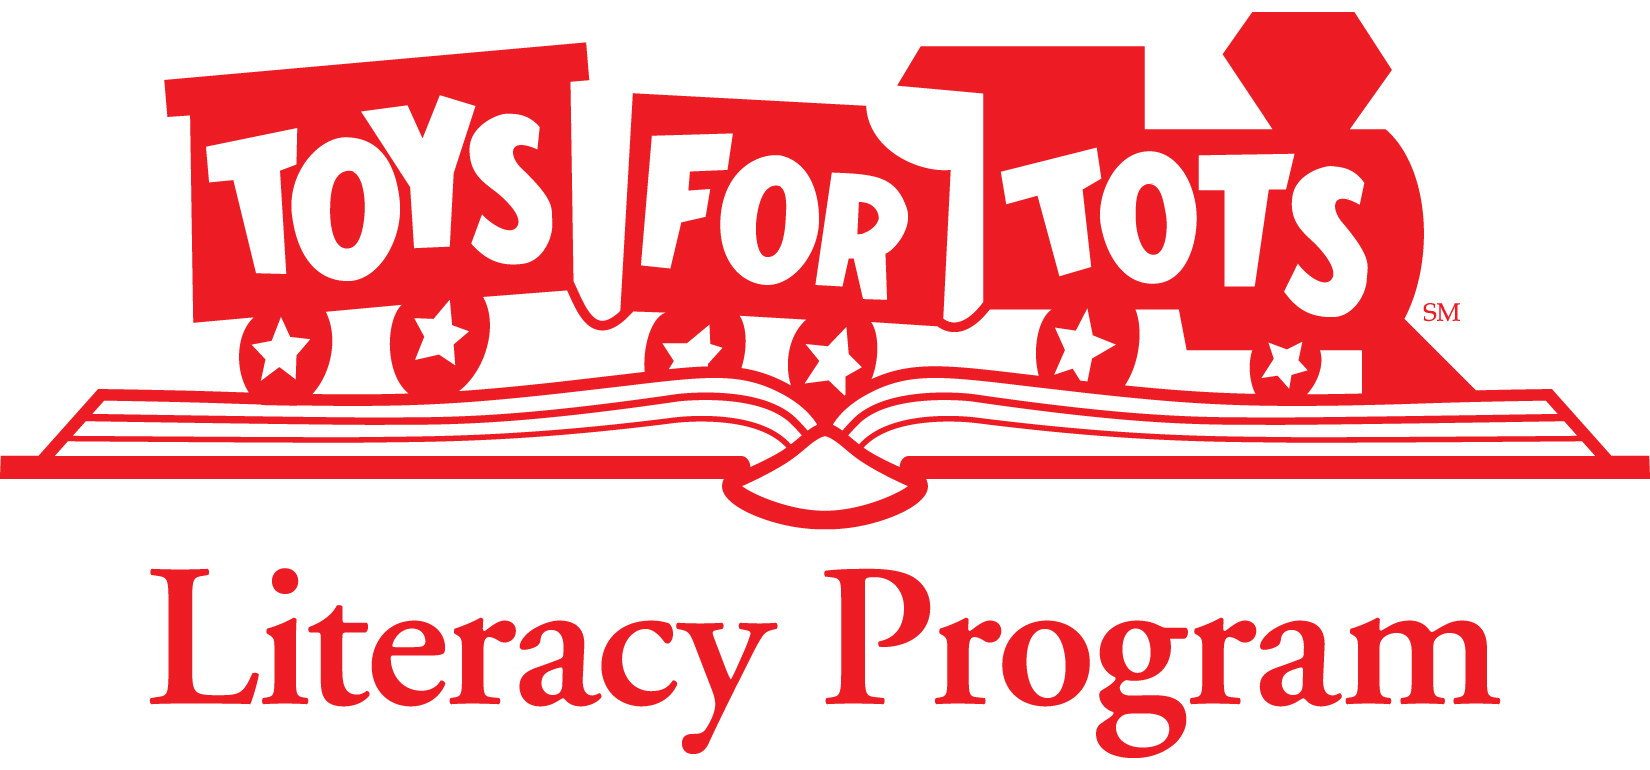 Toys For Tots Logo Pdf : Toys for tots literacy program marches into